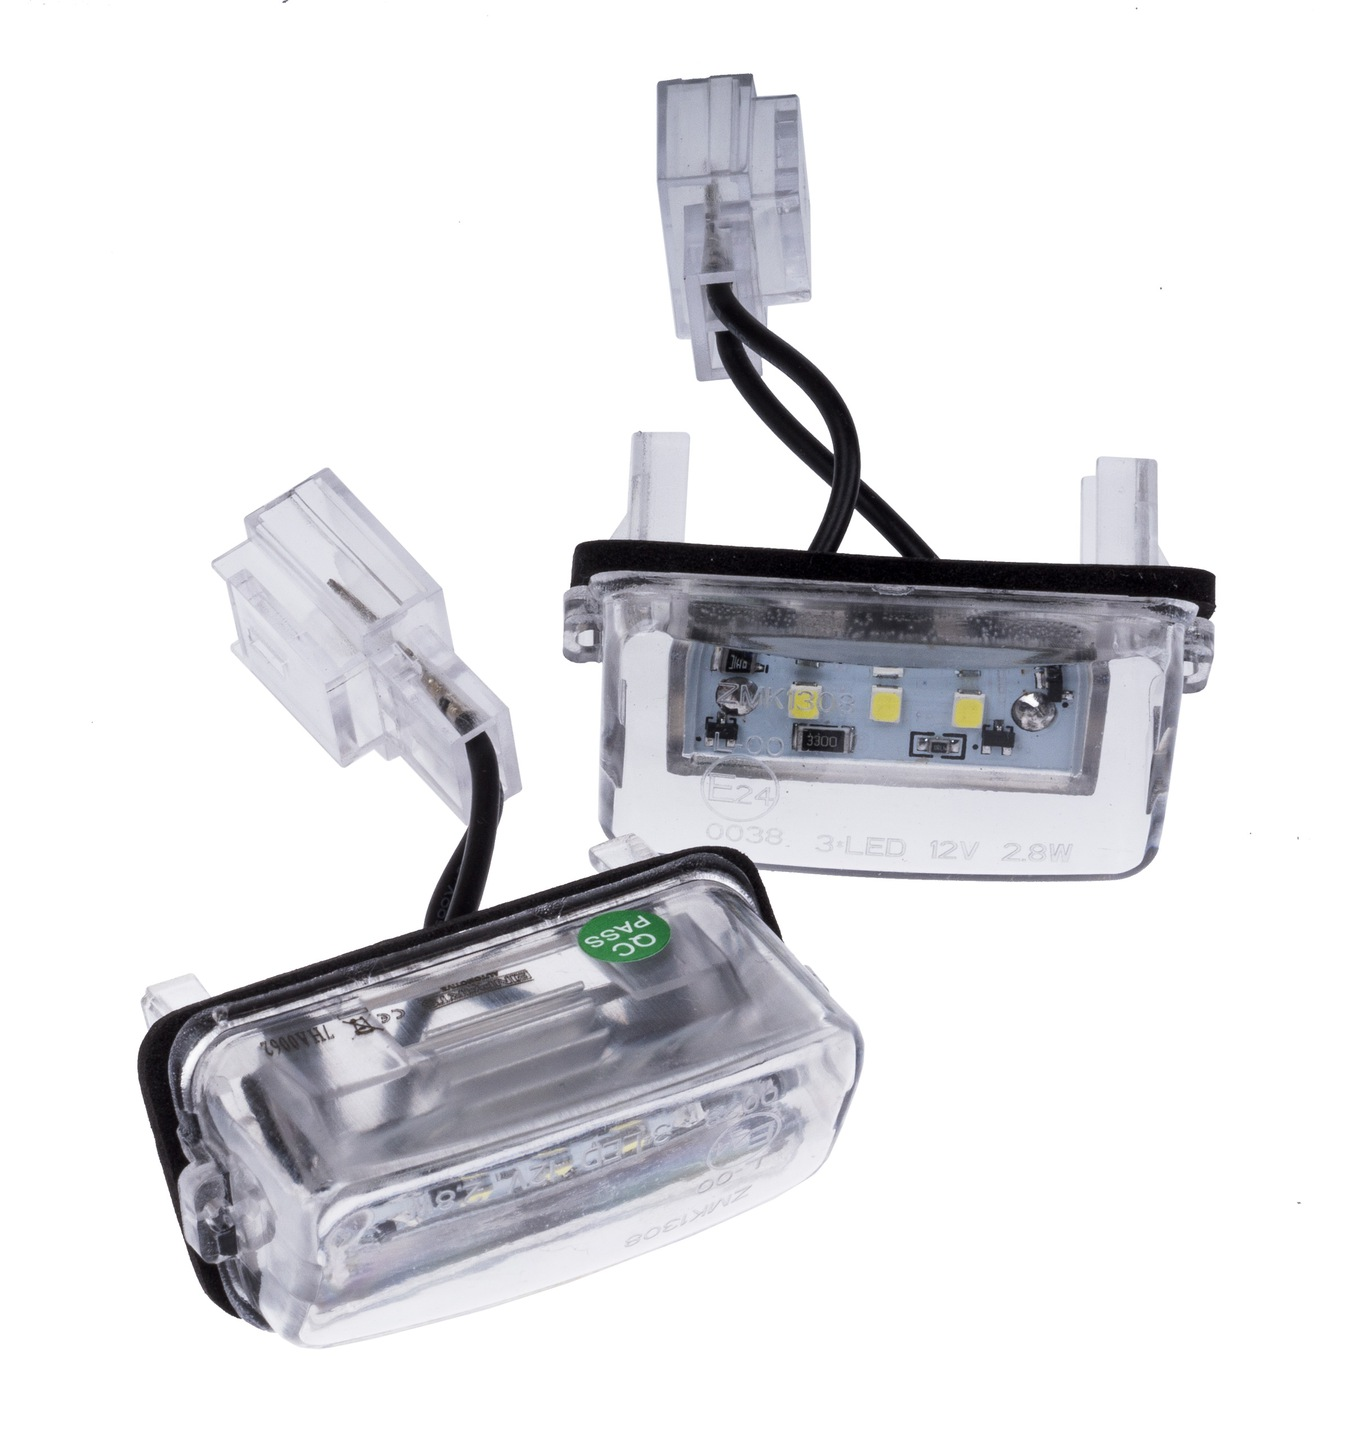 32 lampki tablicy led citroen berlingo 02-10 C3 I